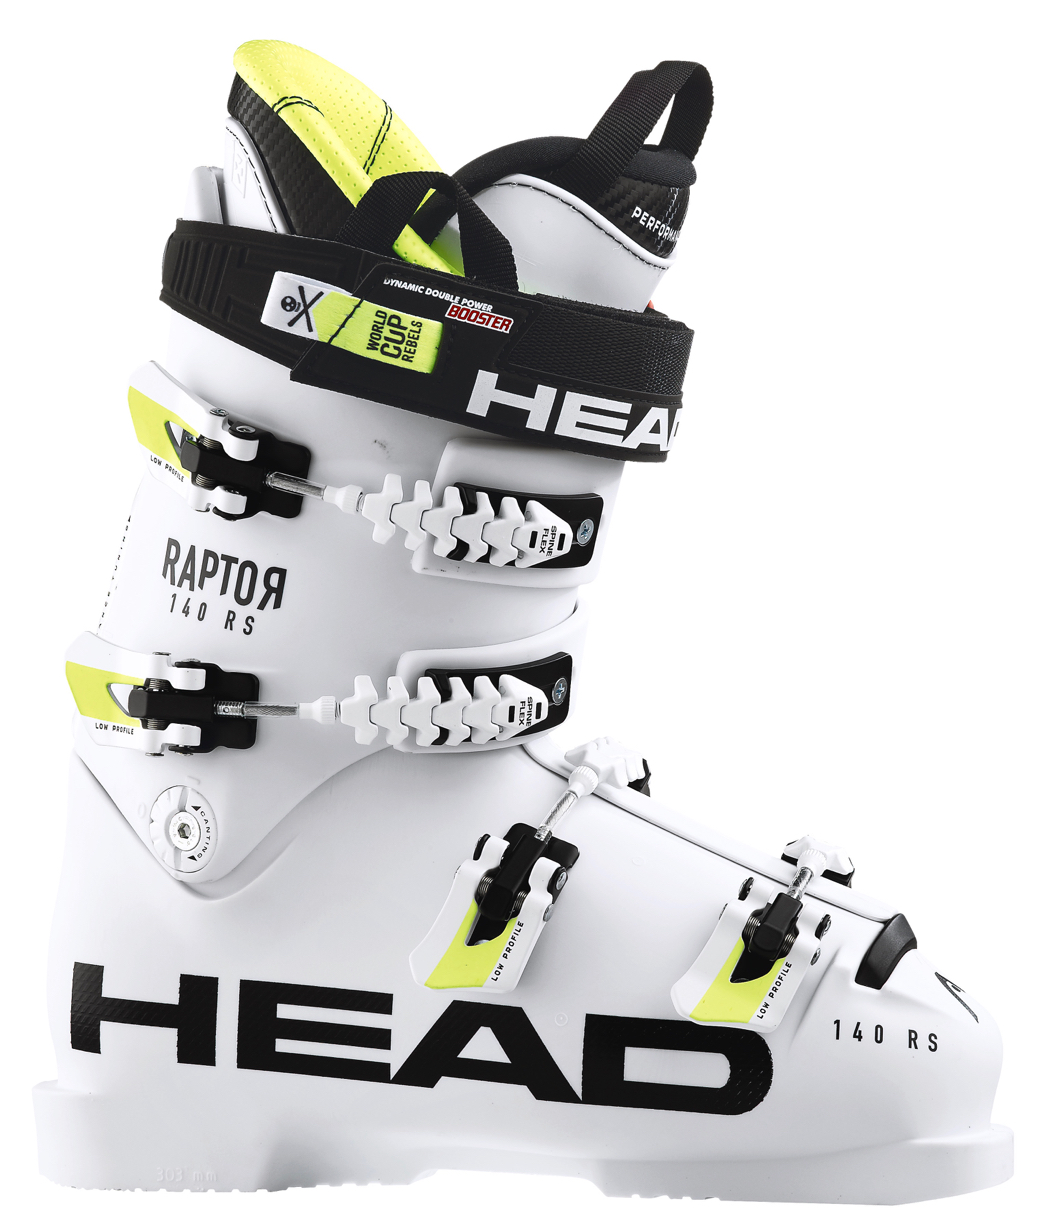 Paul Forward reviews the HEAD Raptor 140 RS for Blister Review